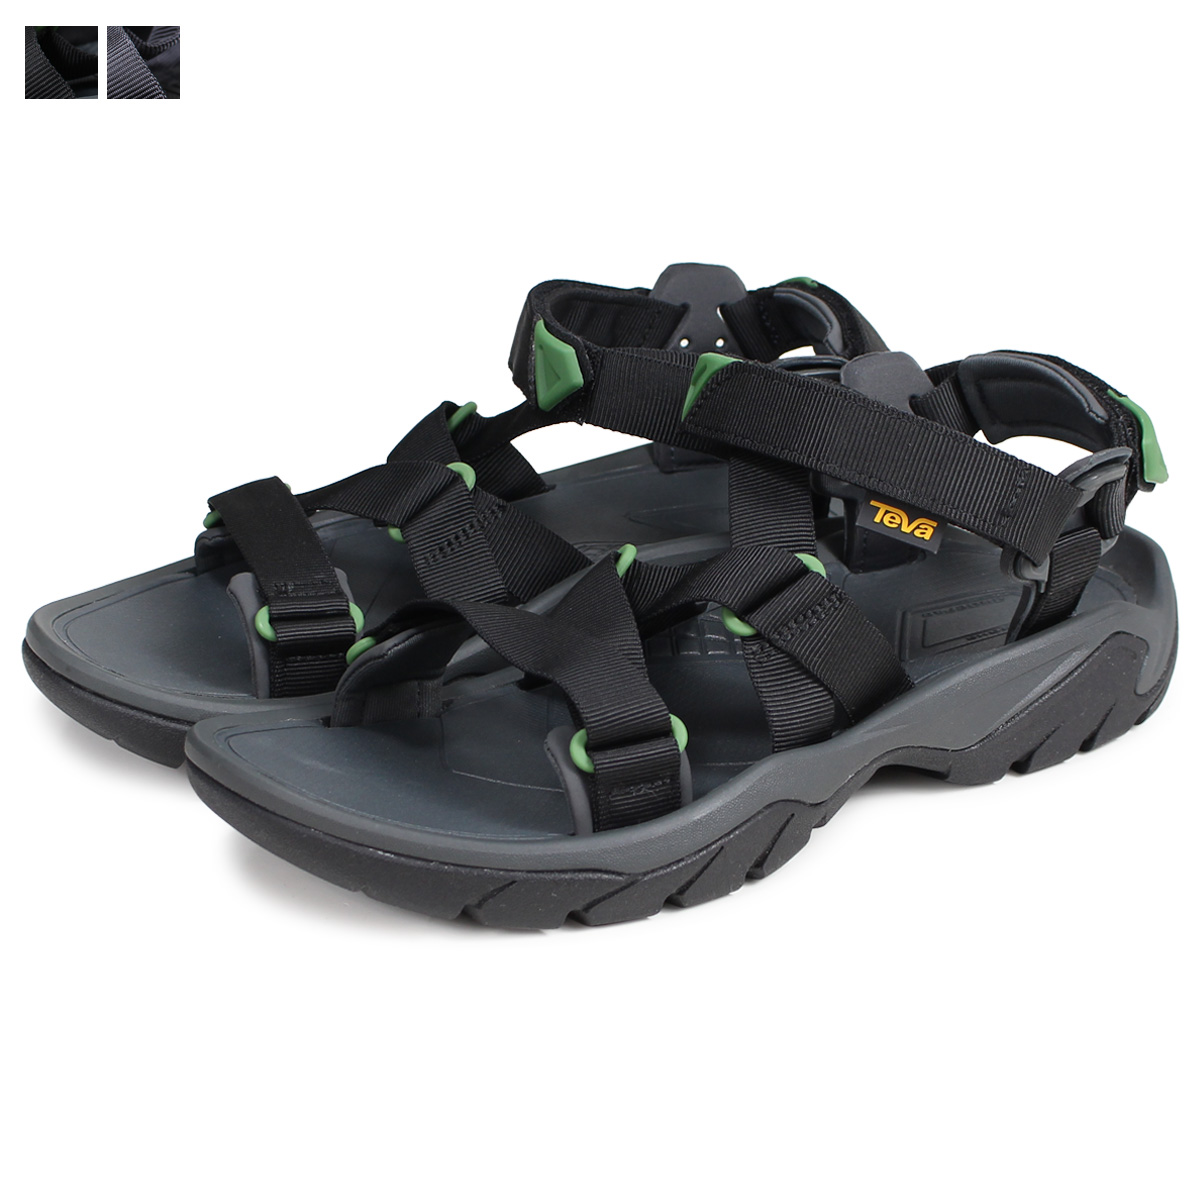 6773ef6839fa Teva TERRA FI 5 SPORT Teva sandals terra men black gray black 1099441  load  planned Shinnyu load in reservation product 3 13 containing